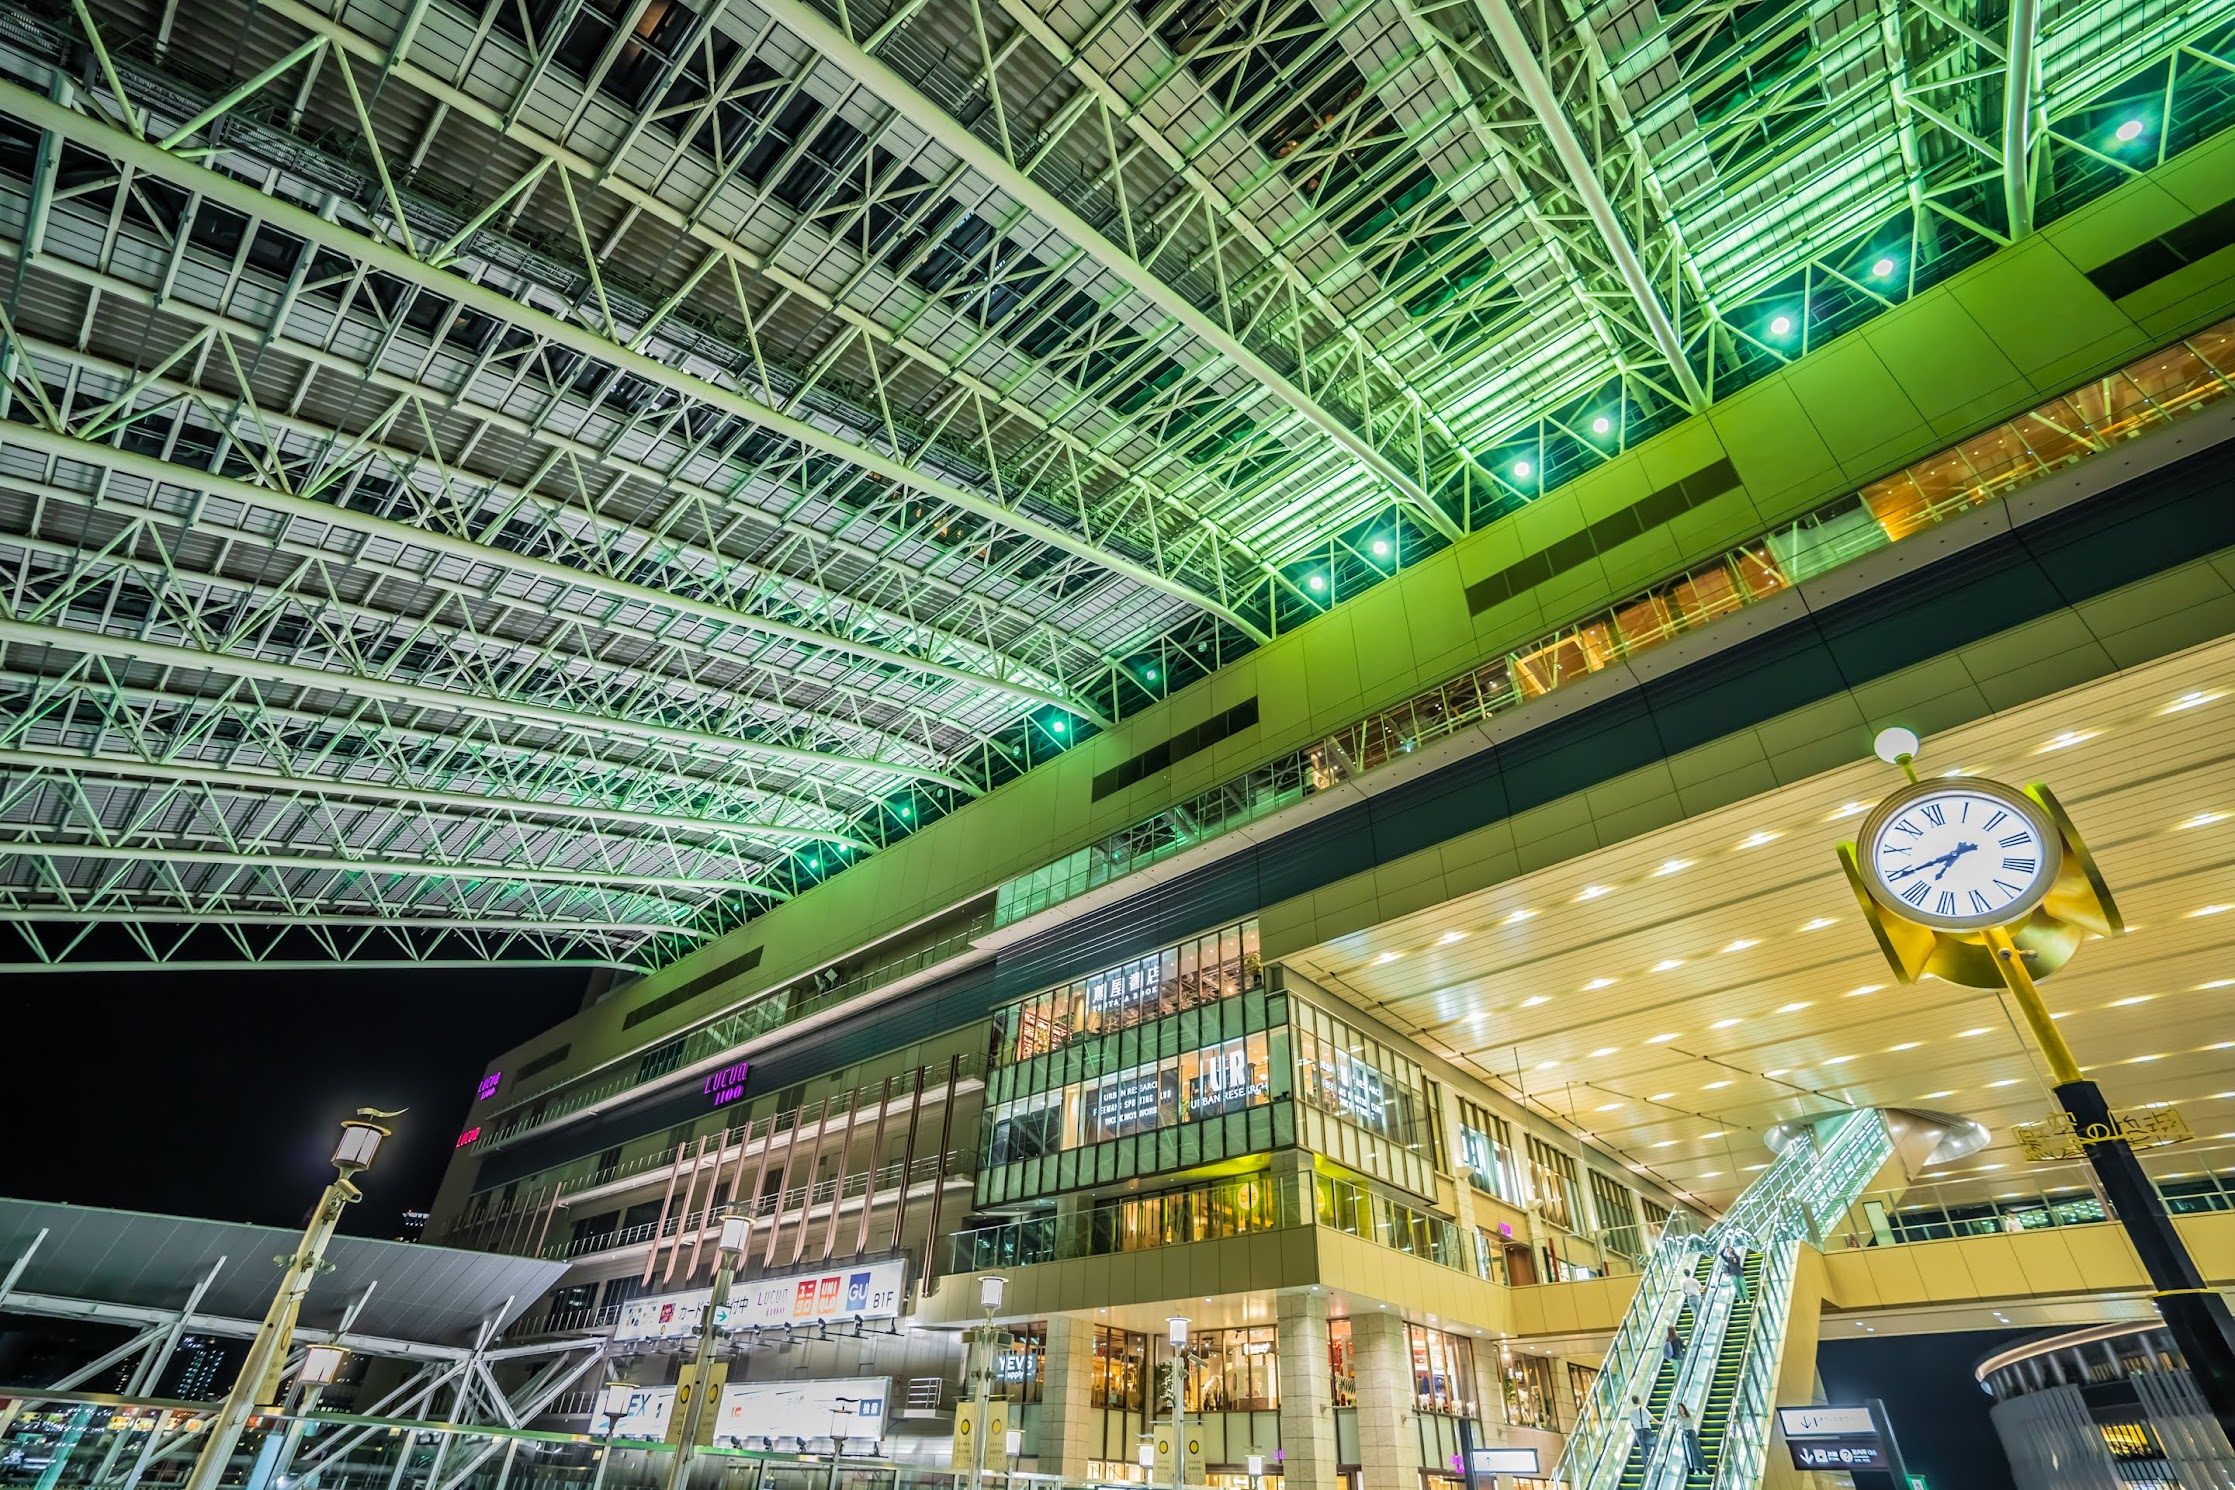 Osaka station Toki-no-hiroba Plaza2